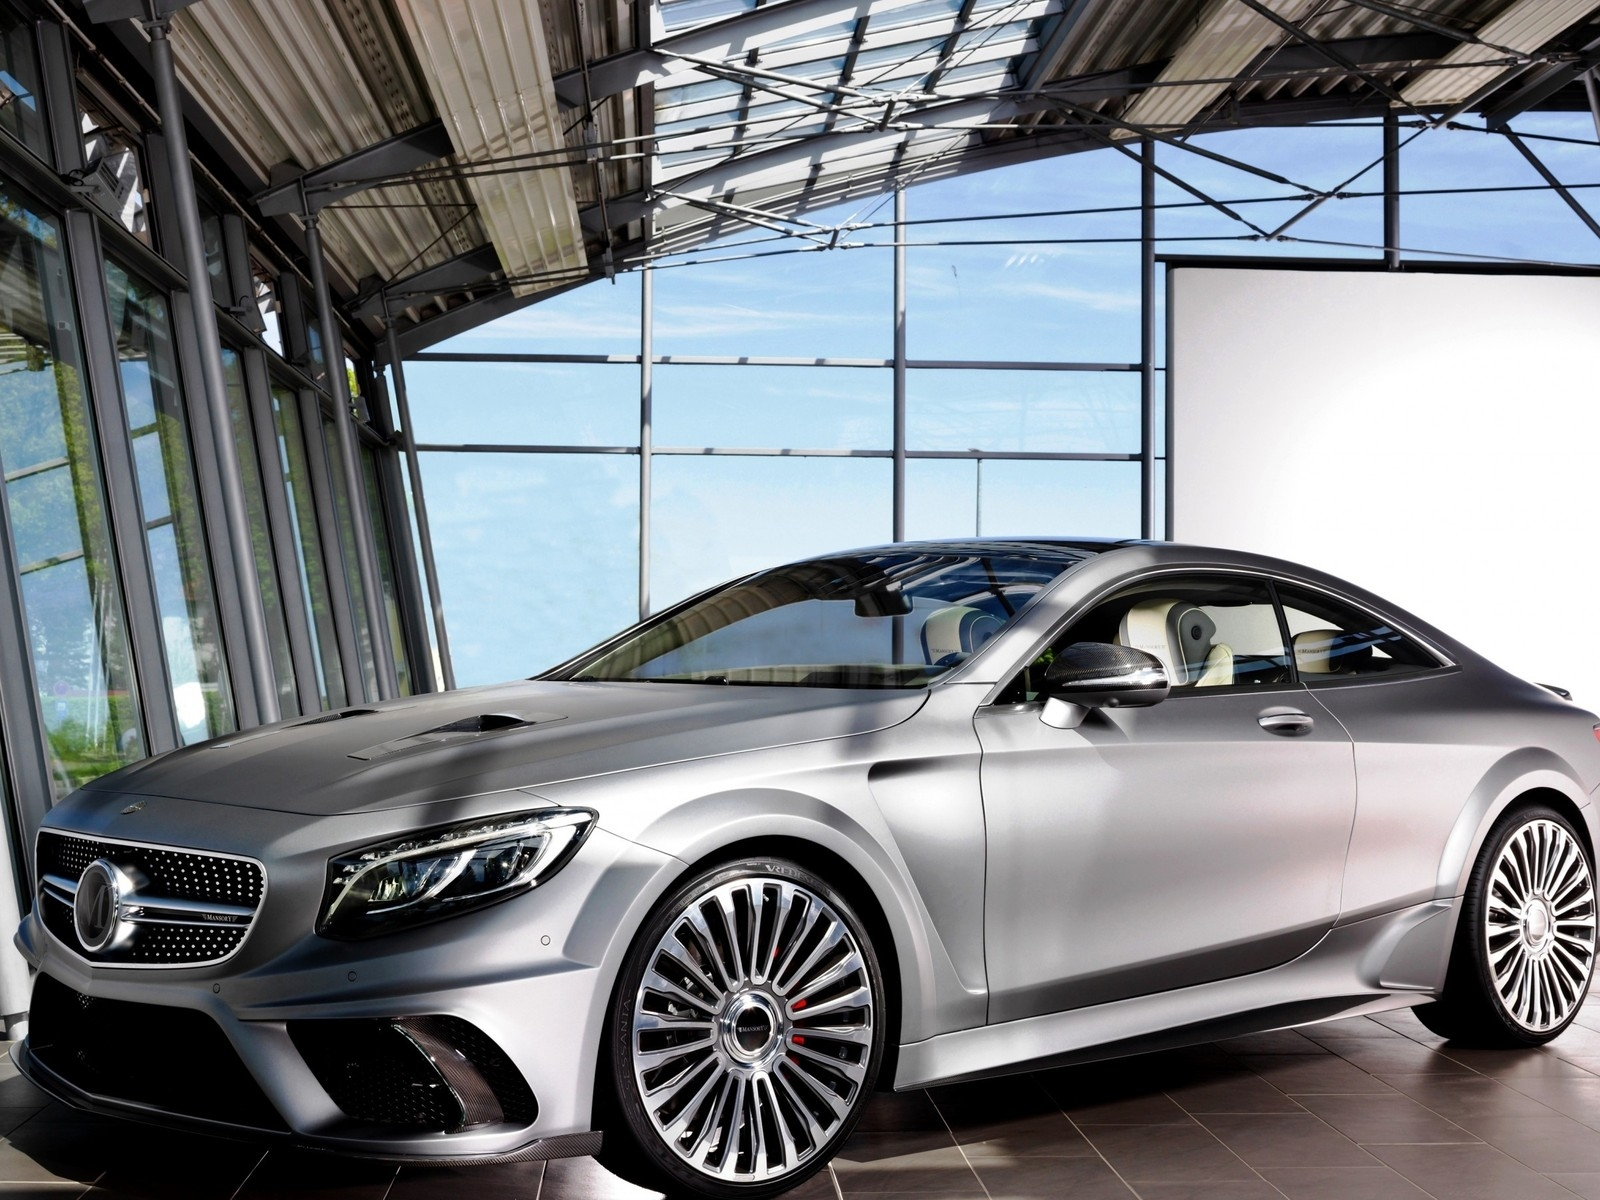 Mansory S 63 AMG Diamond Edition for 1600 x 1200 resolution